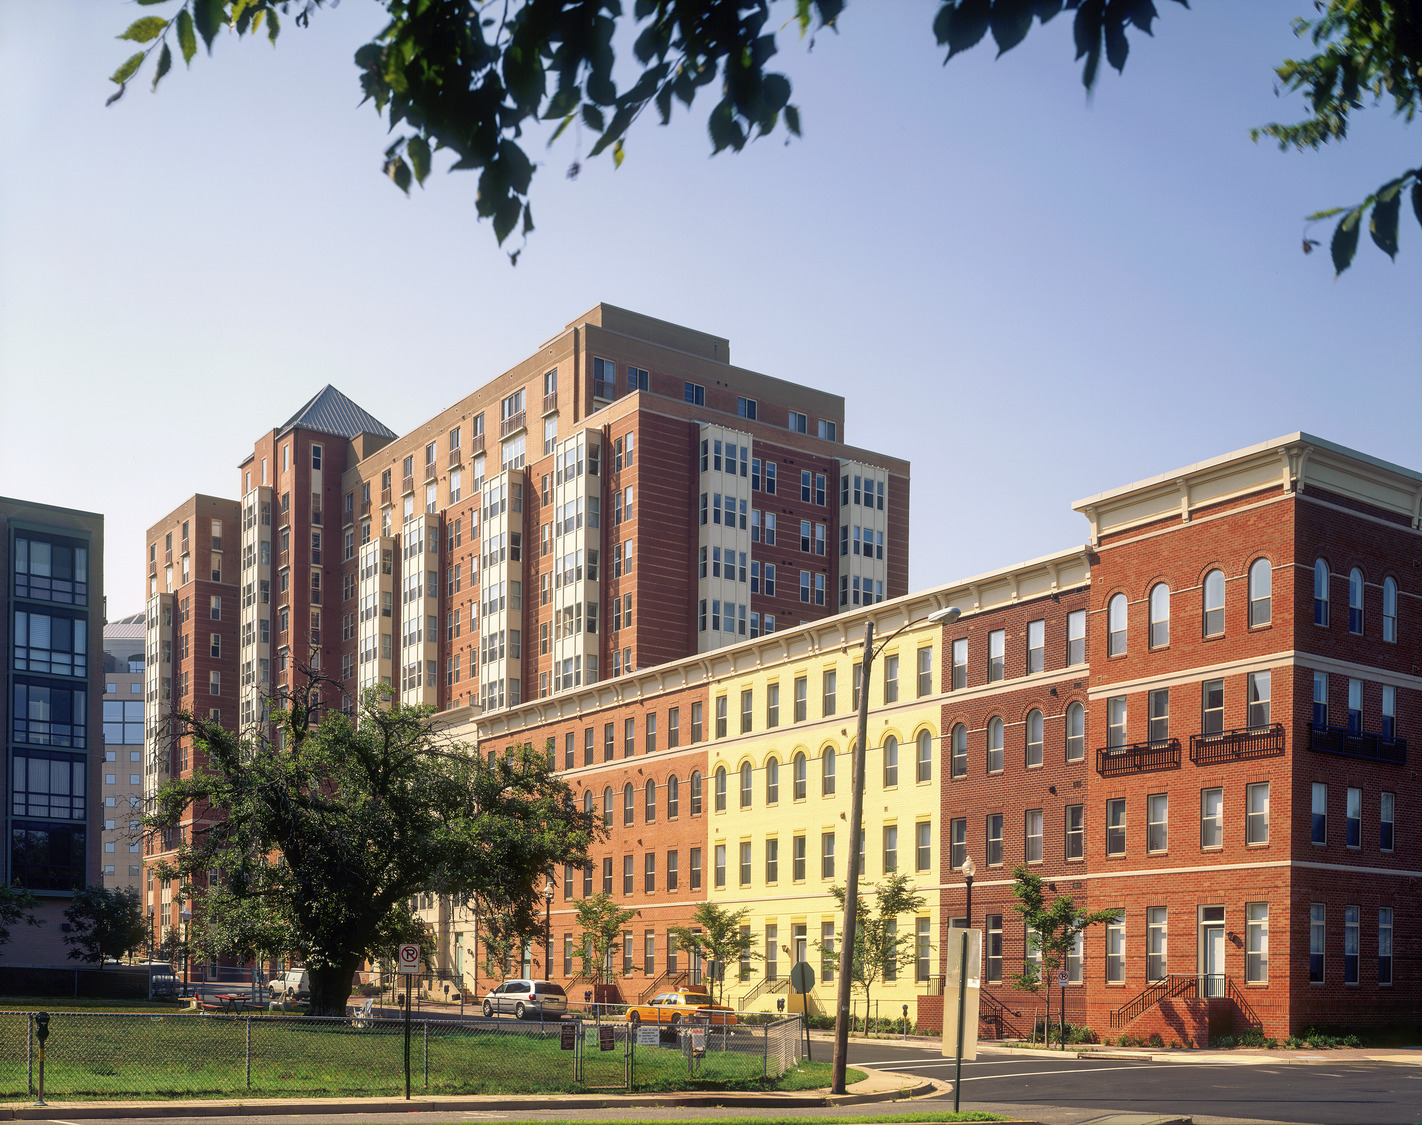 CBG builds The Clarendon, a 12-Story, 292-Unit Luxury Apartment Complex Over a Shared Underground Garage in Arlington, VA